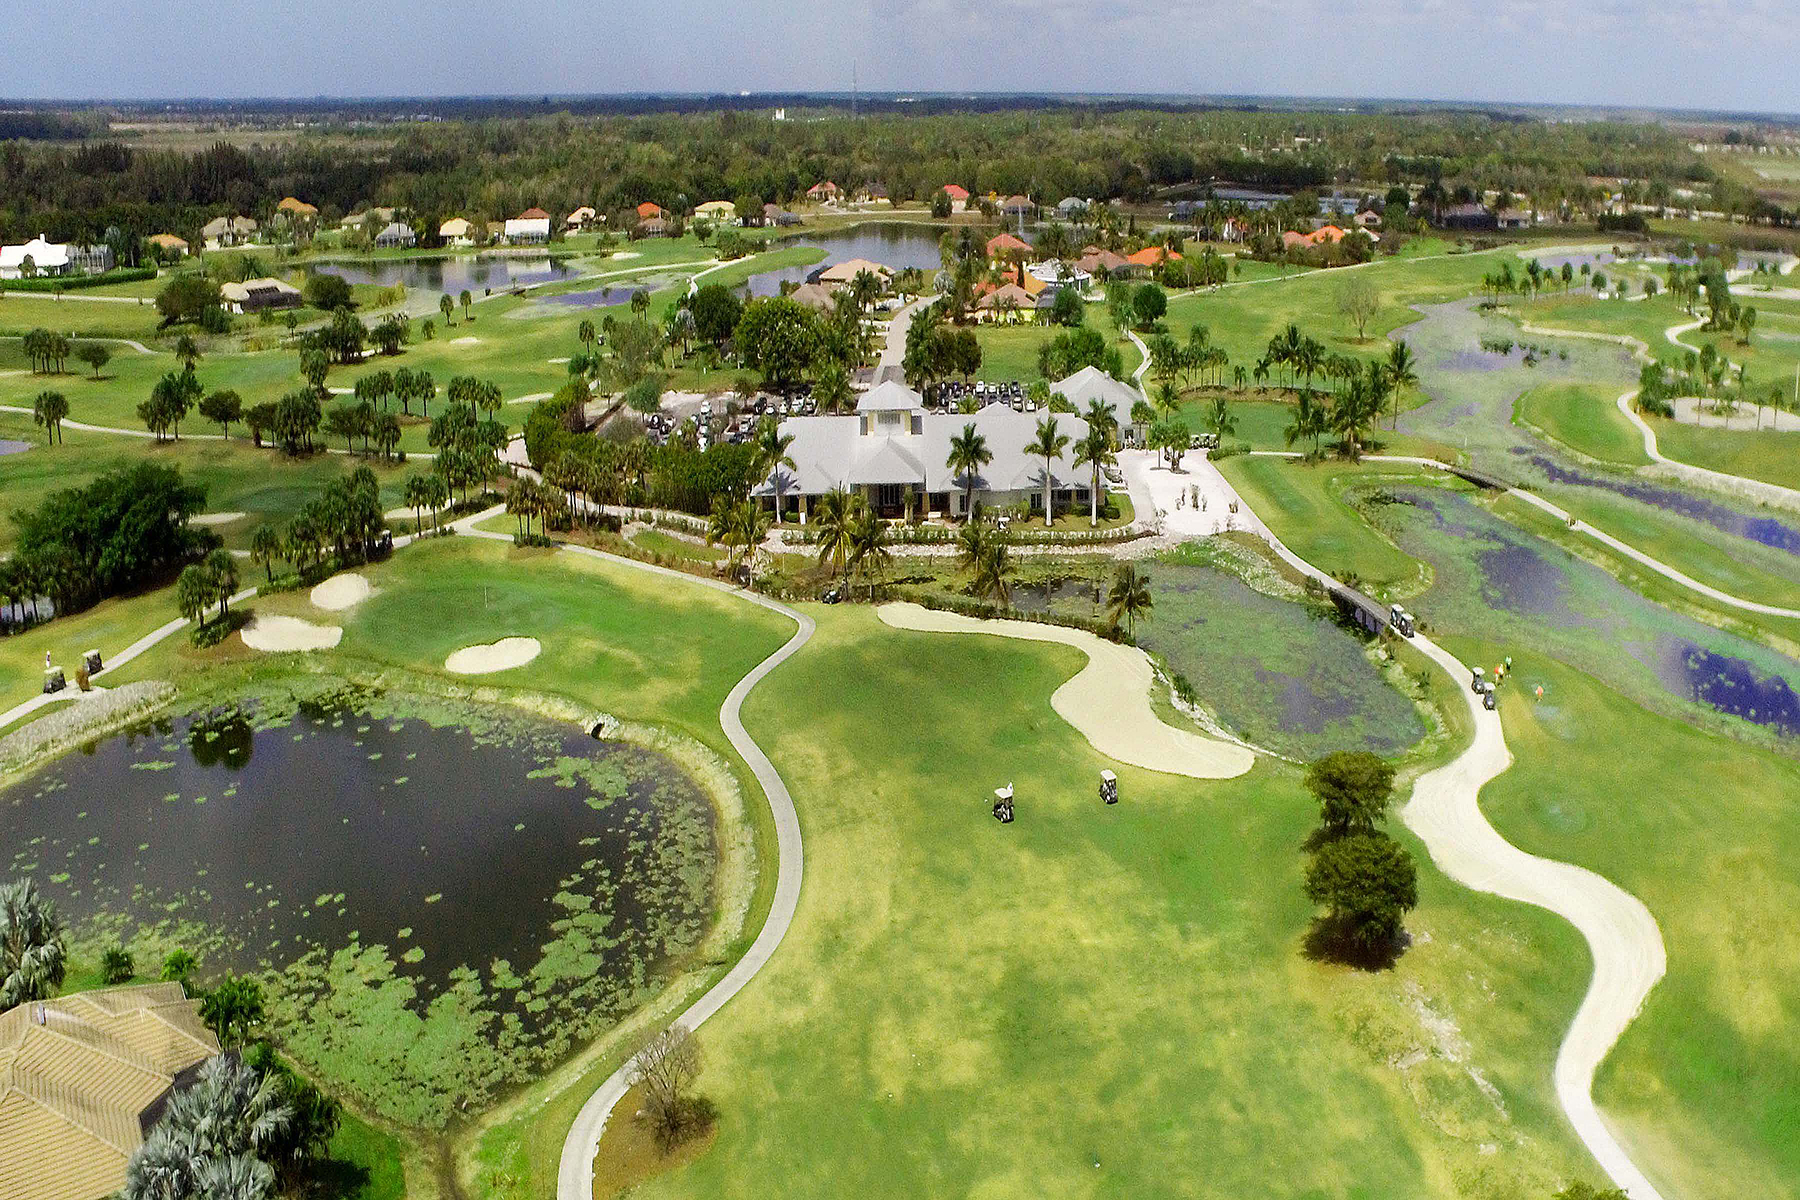 أراضي للـ Sale في ROYAL PALM GOLF ESTATES 18570 Royal Hammock Blvd, Naples, Florida, 34114 United States